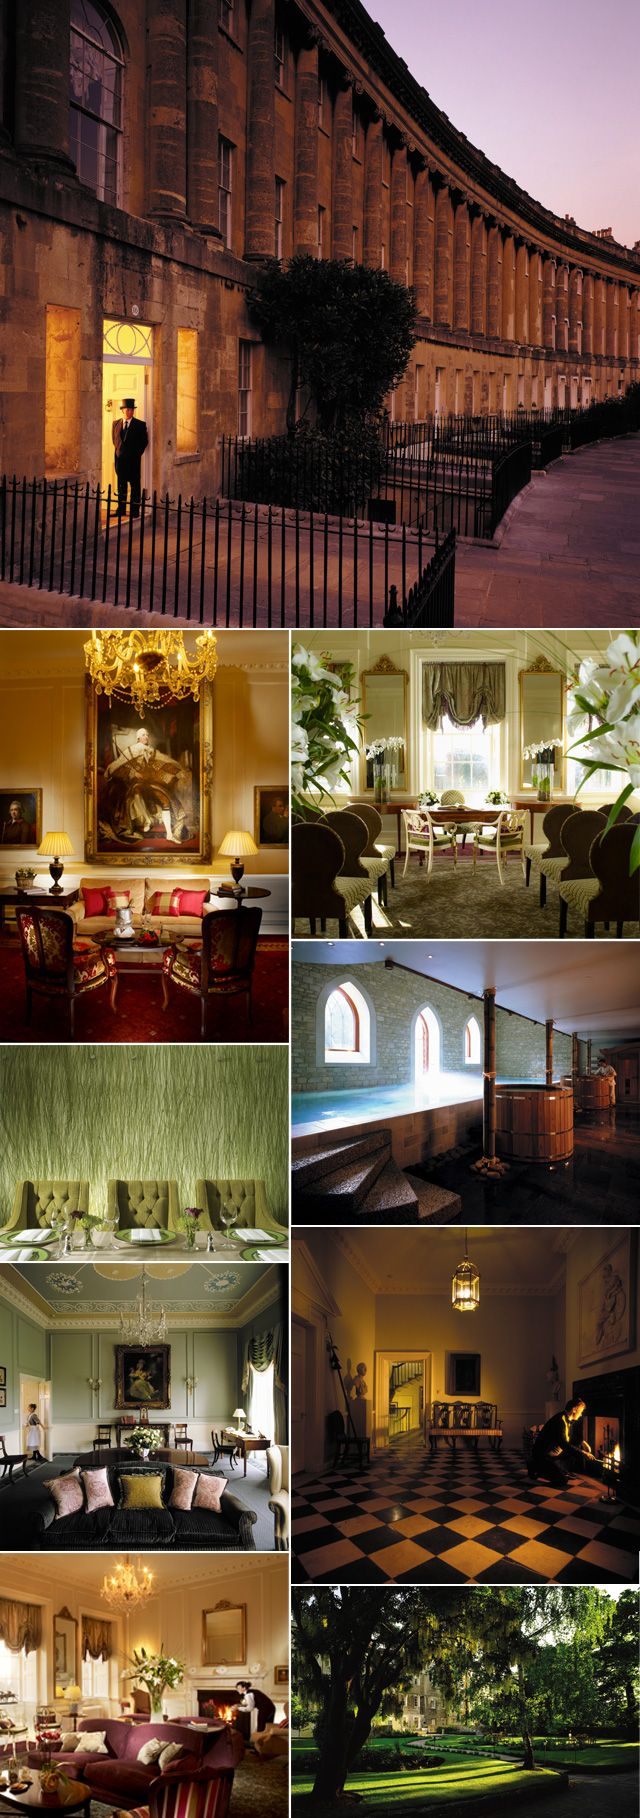 The Royal Crescent, Bath, UK - perfect for weddings, corporate events or some time away from it all...